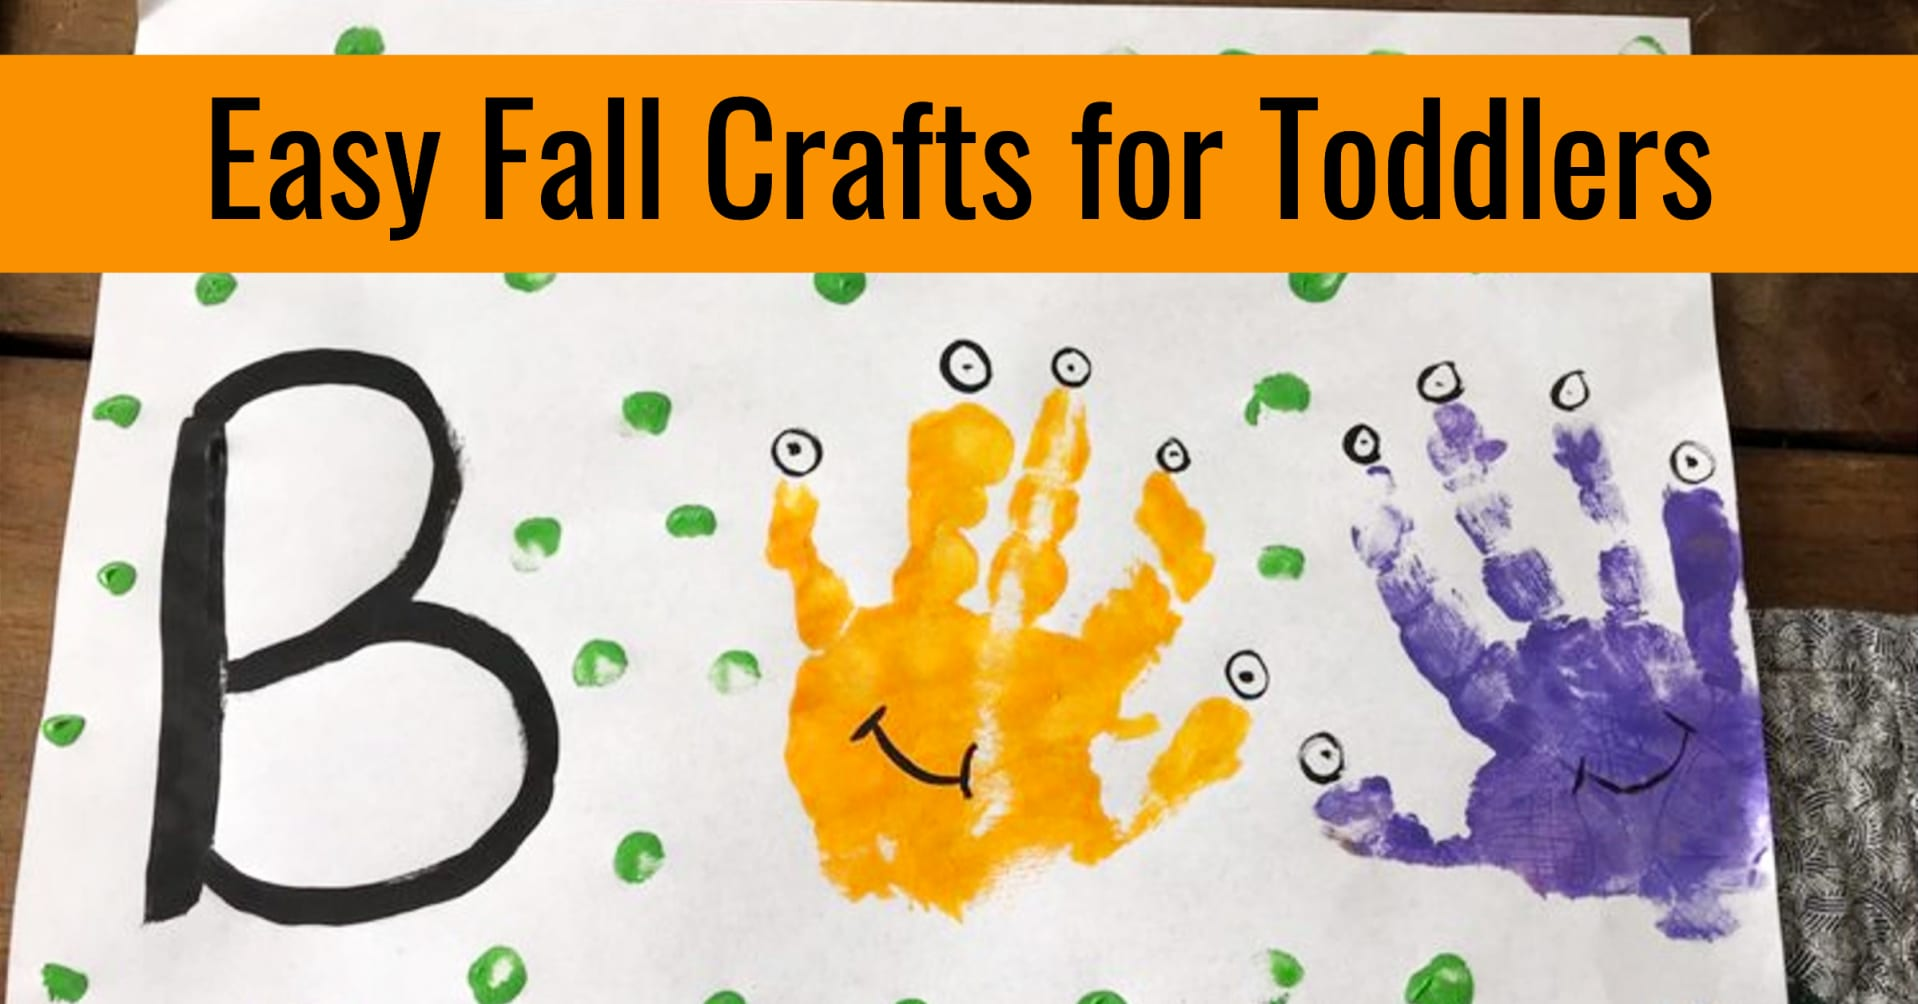 Autumn & Fall Crafts For Toddlers To Make